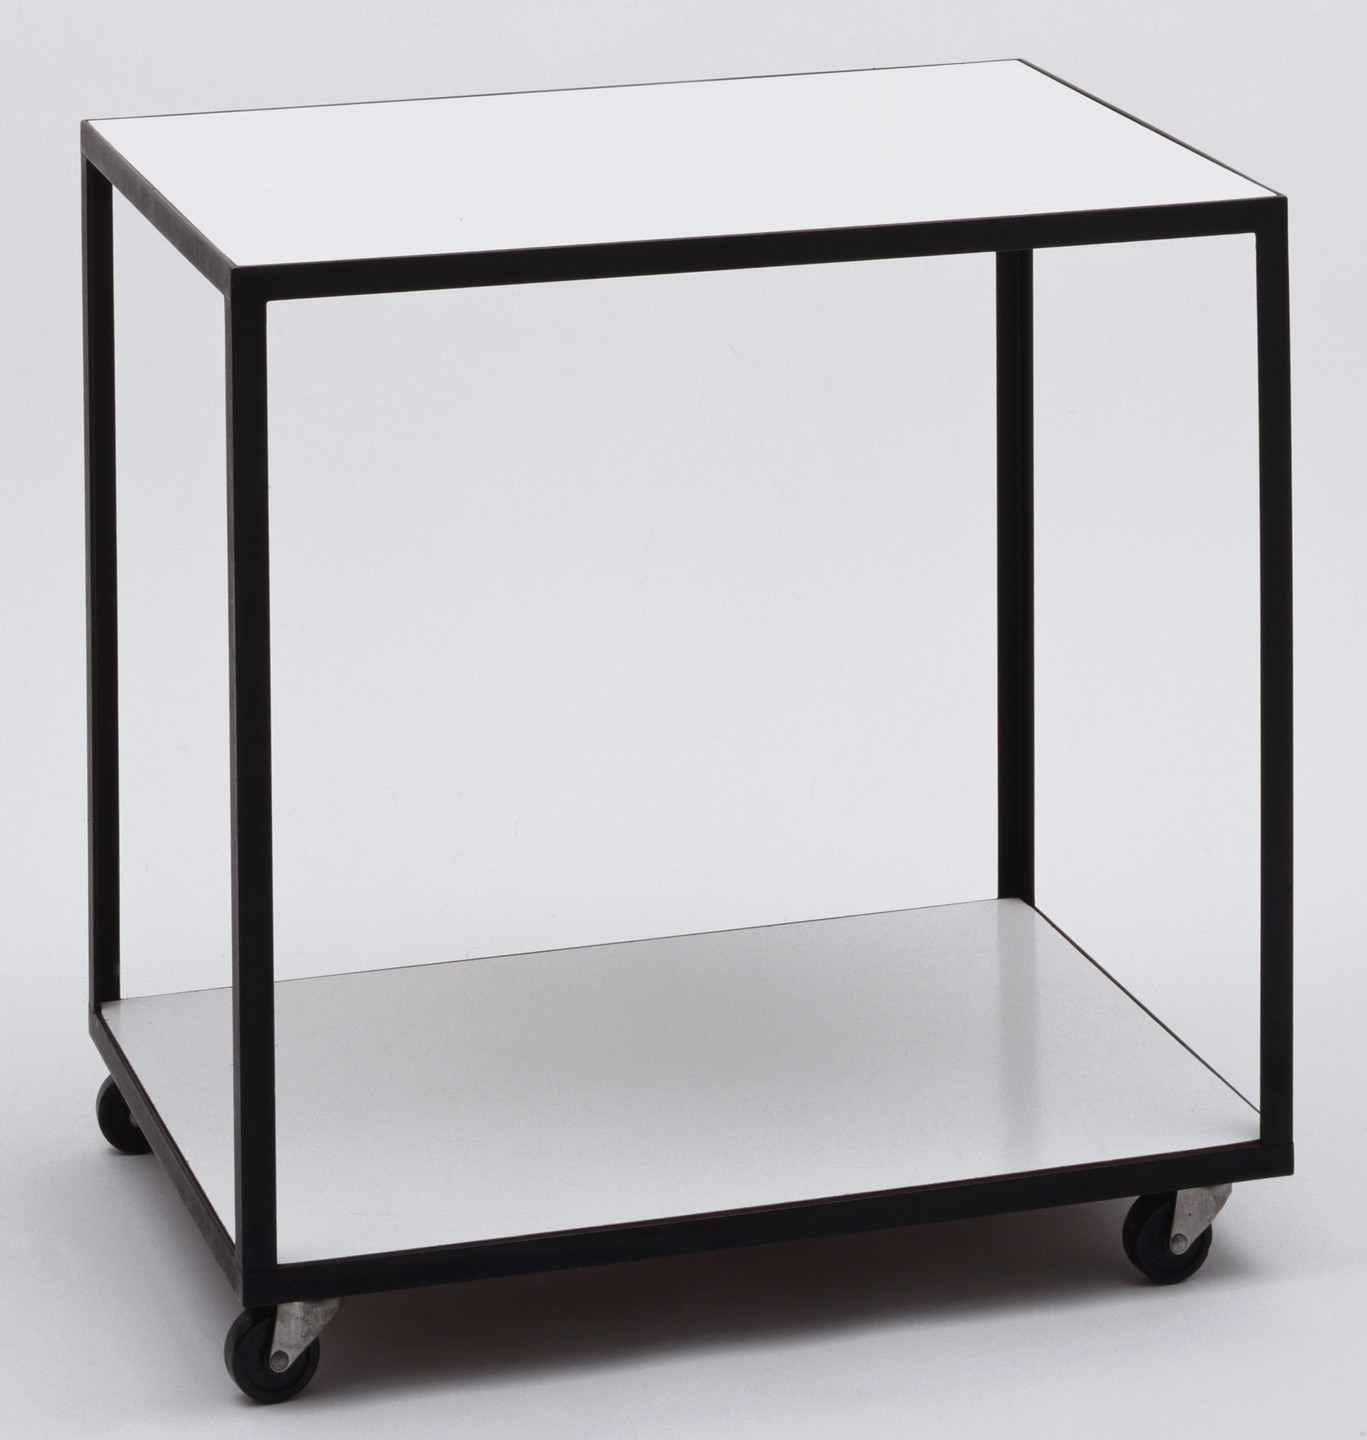 George Nelson. Mobile Table (model 5152). c. 1949